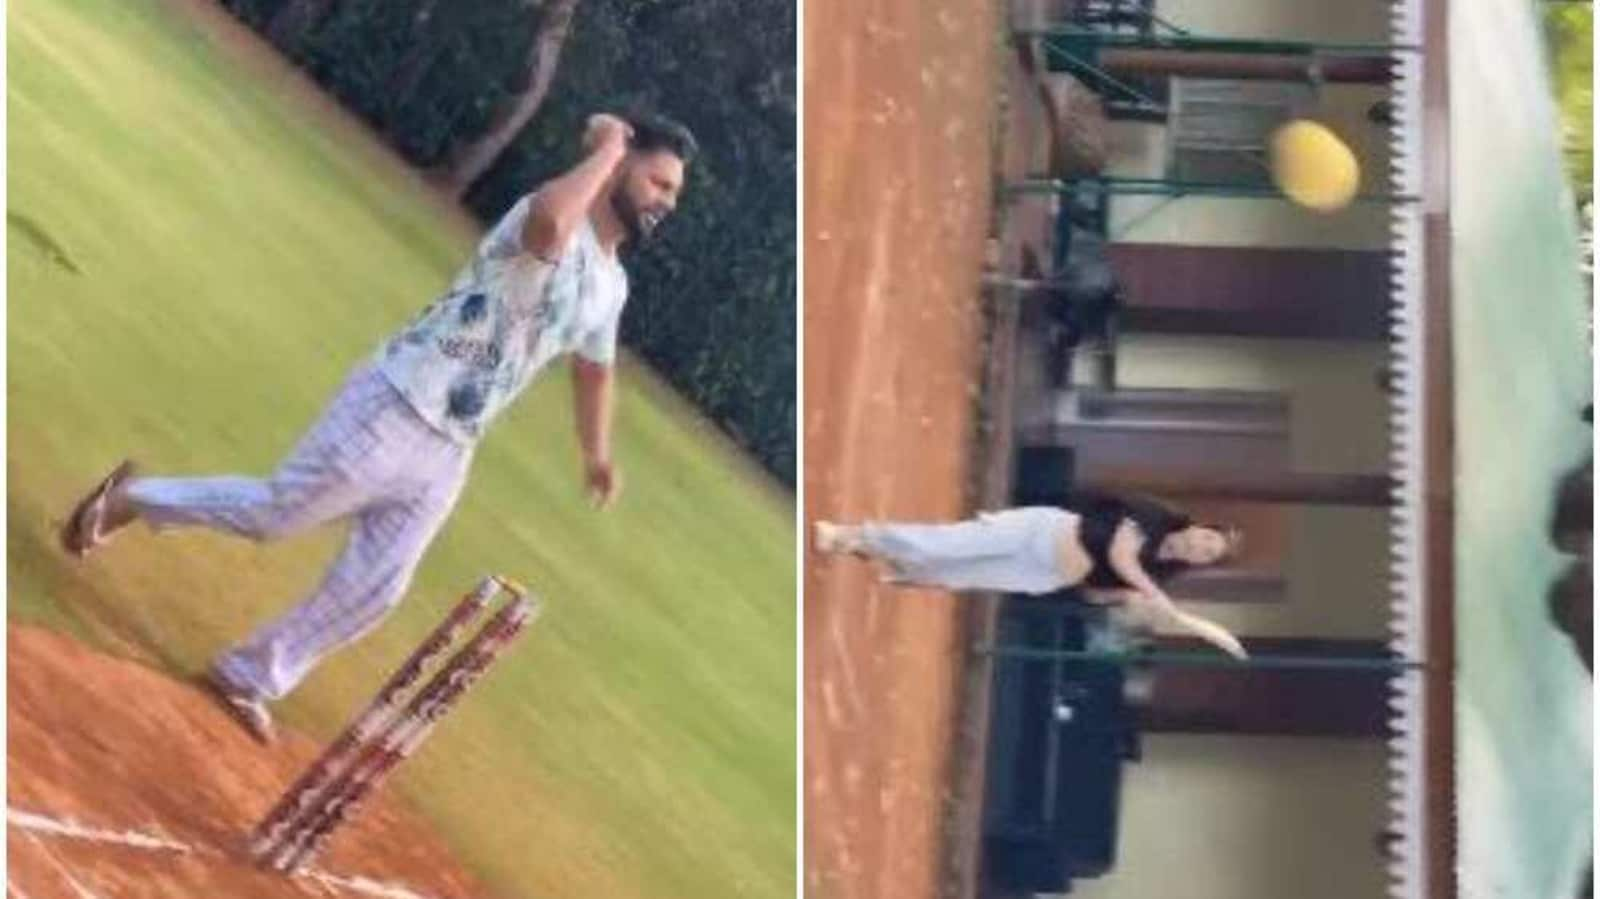 Rahul Vaidya's fiance Disha Parmar almost knocks friend out while playing cricket, he calls her 'Virat Kohli in making' - Hindustan Times